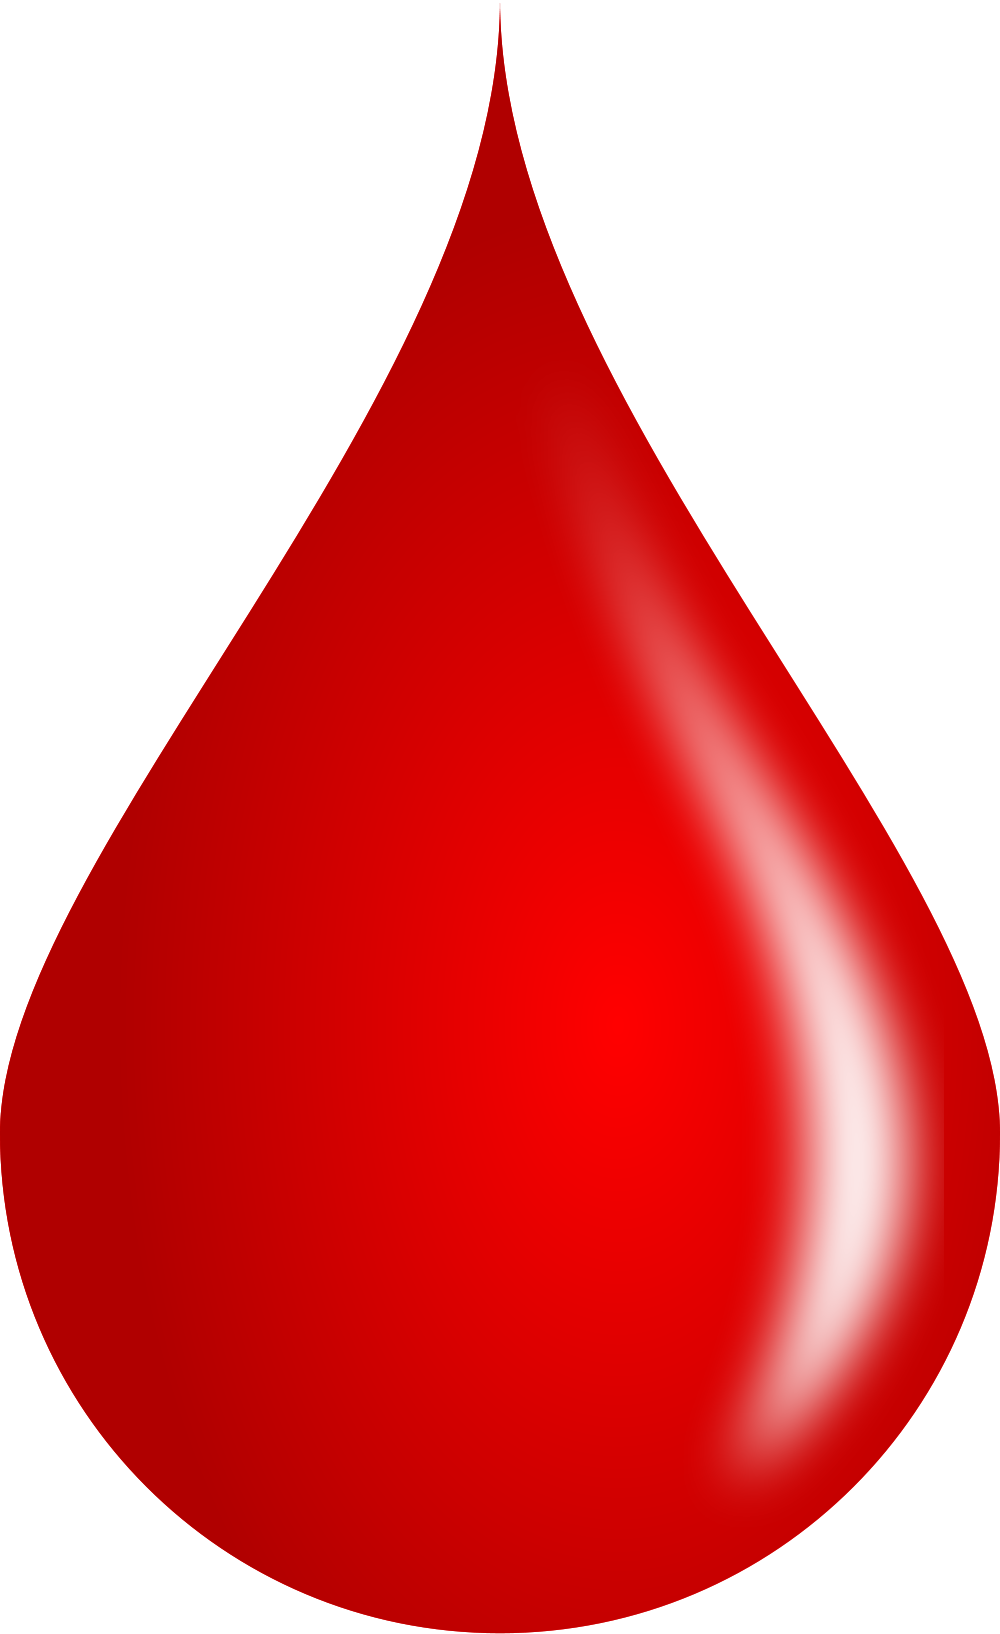 blood drop circulatory system emaze #37691